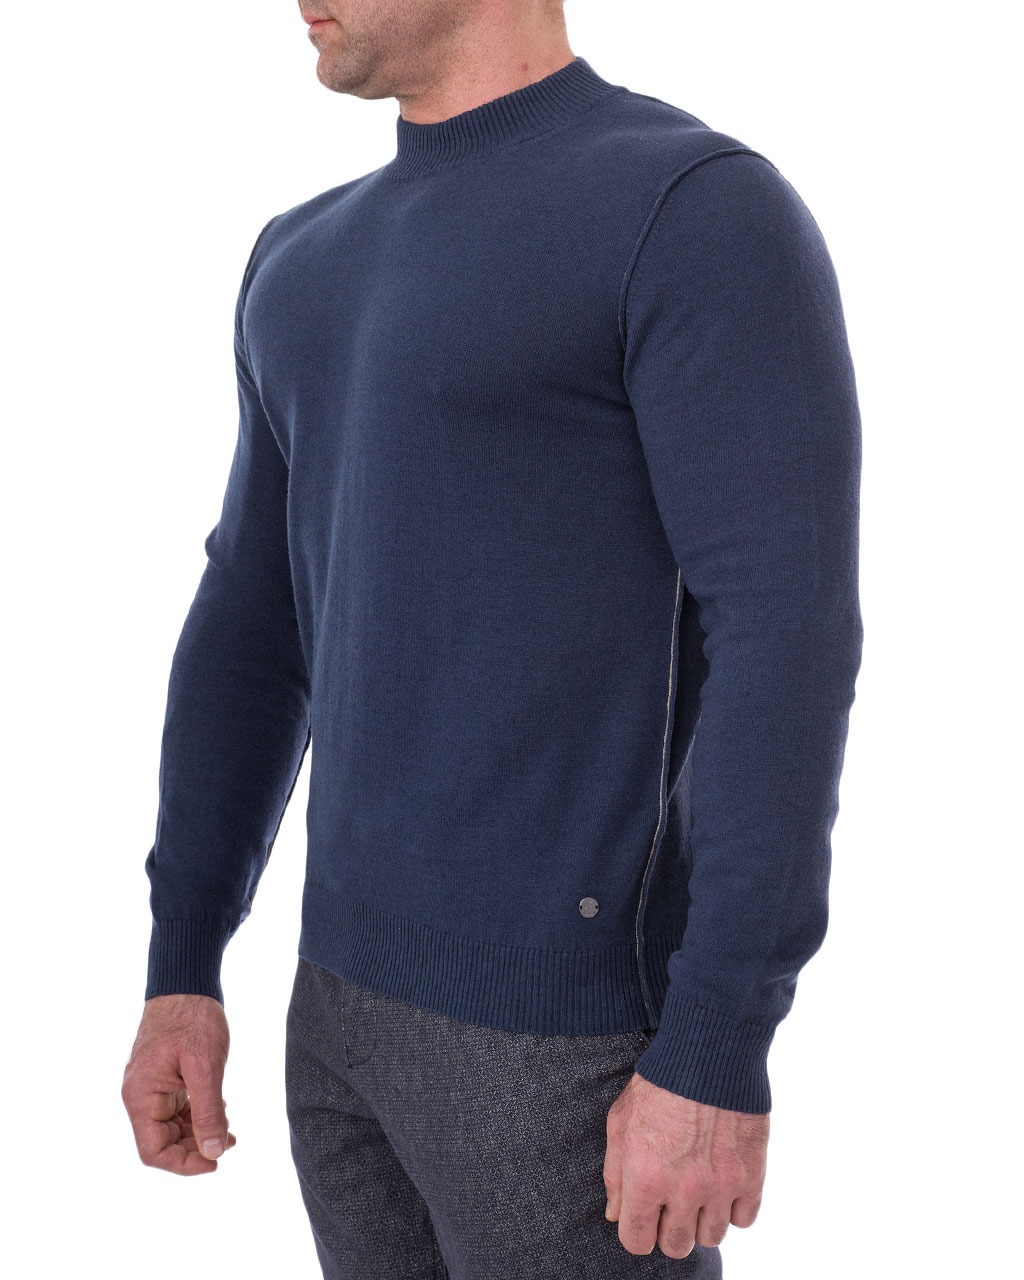 Men's jumper 75217-680-487625/7-81    (4)